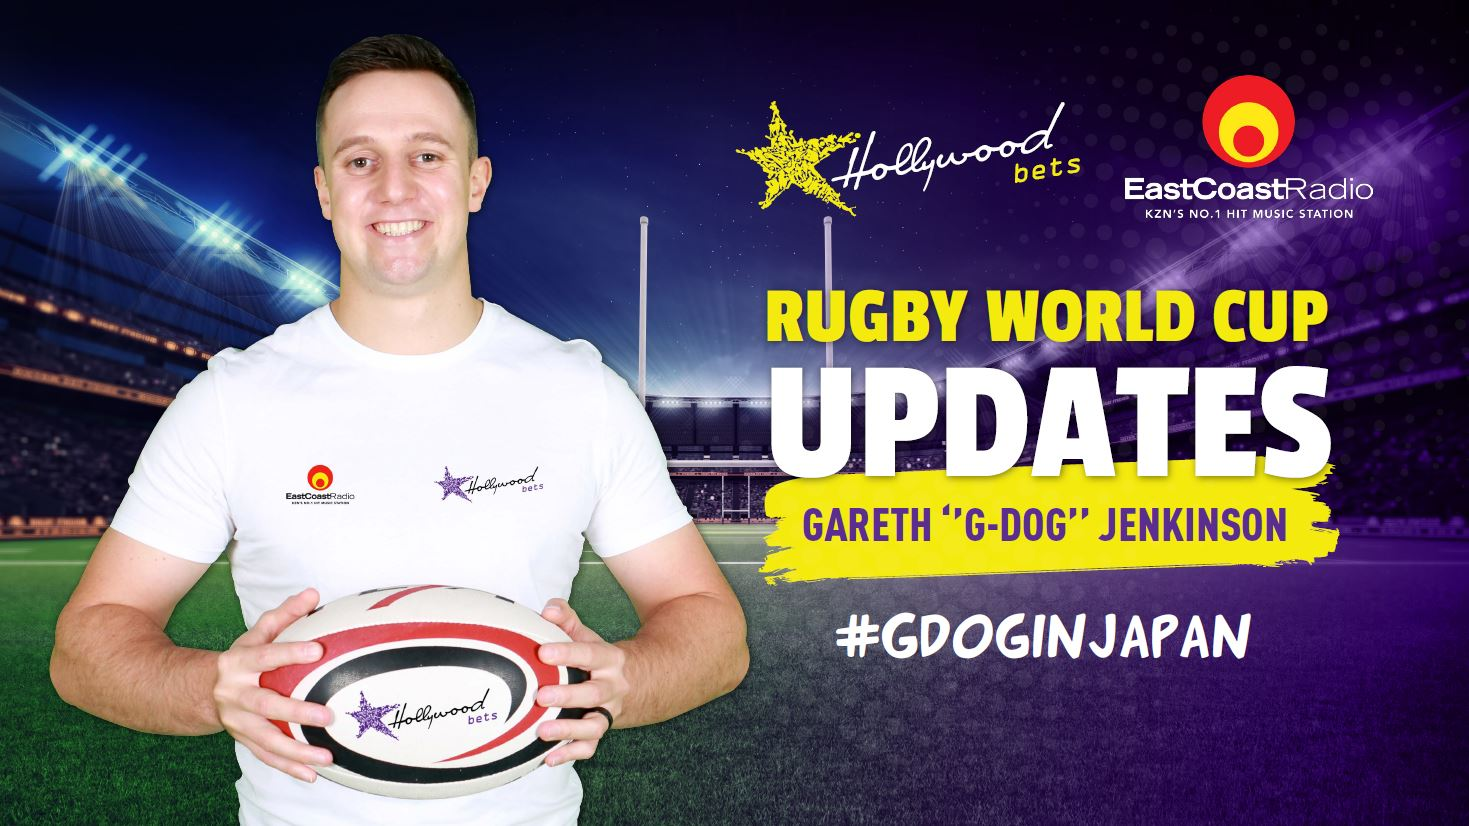 Rugby World Cup 2019 updates with Gareth Jenkinson - #GDogInJapan